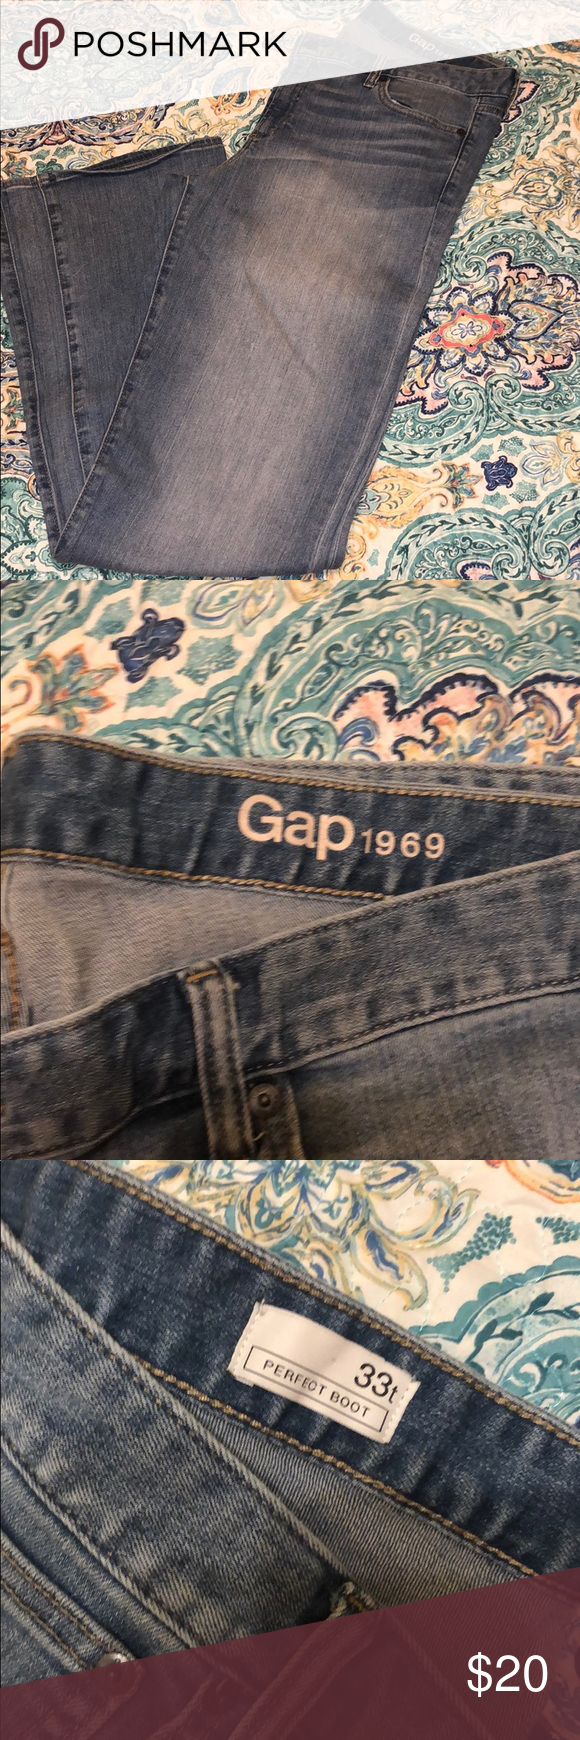 e25d0c9be2f Gap 1969 perfect bootcut jeans size 33T (16 Tall) Light wash Gap 1969  perfect